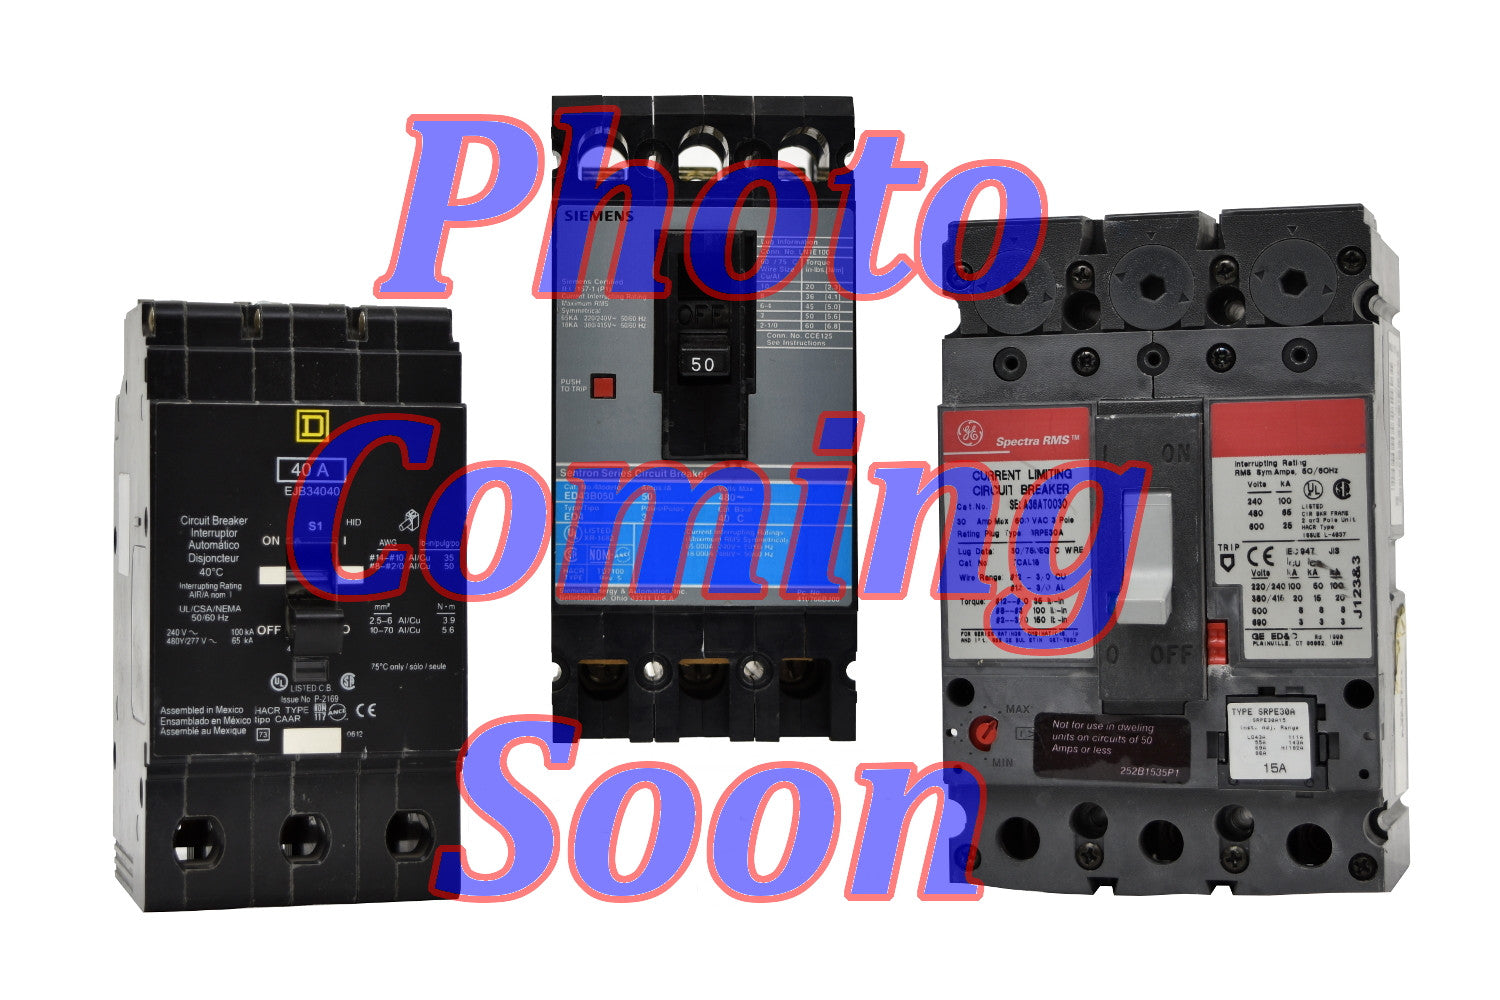 Cutler Hammer BD1010 Circuit Breakers